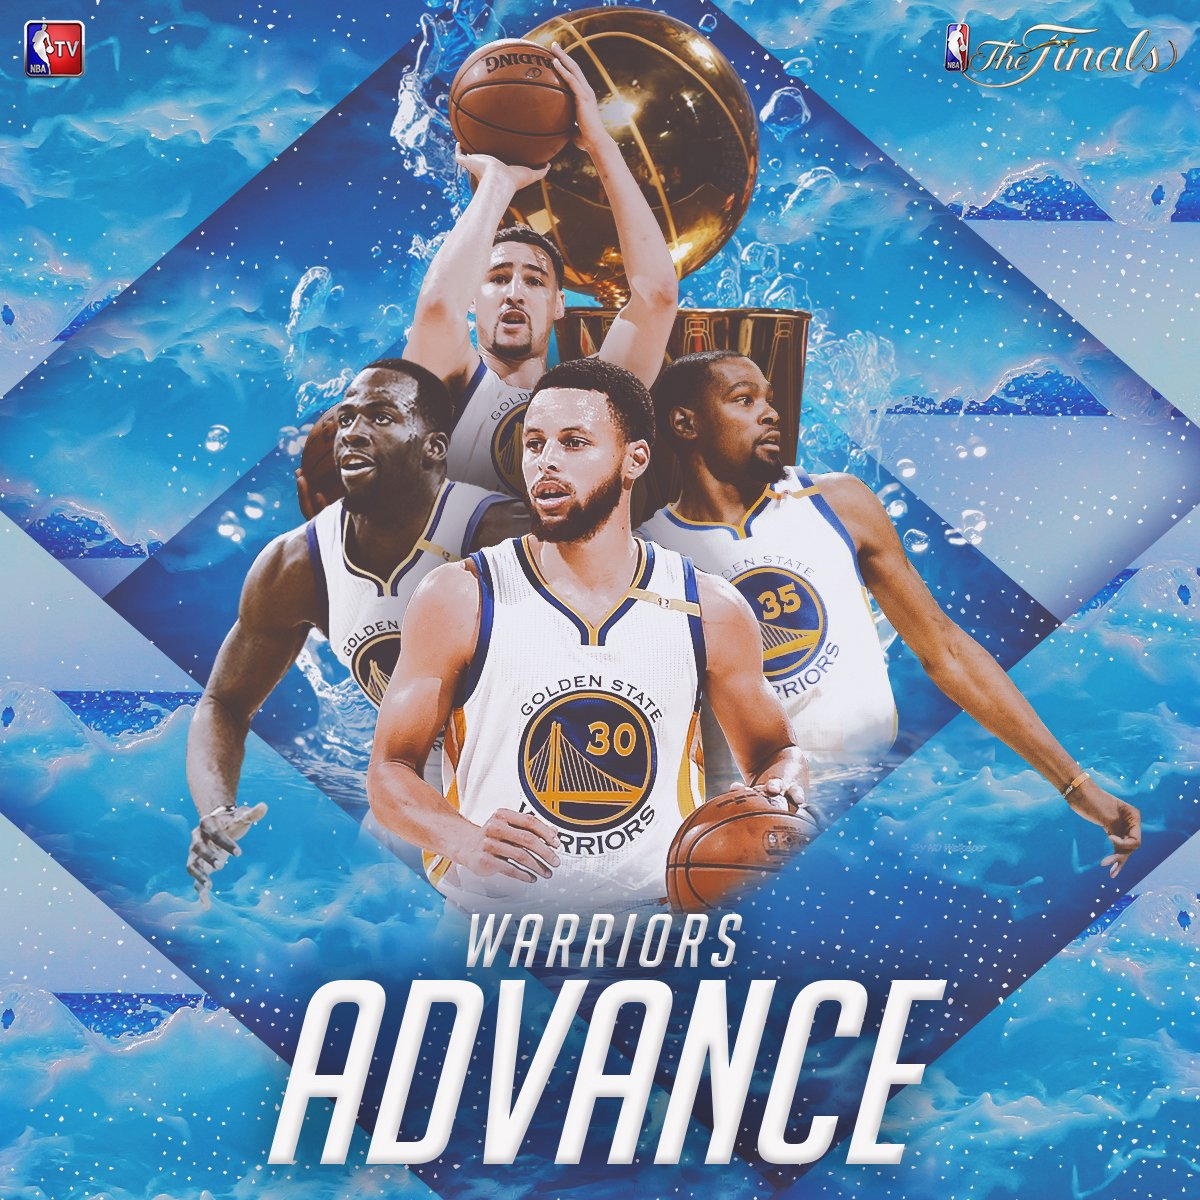 .@warriors are the 2017 Western Conference Champions & advance to their third straight #NBAFinals! 🏆